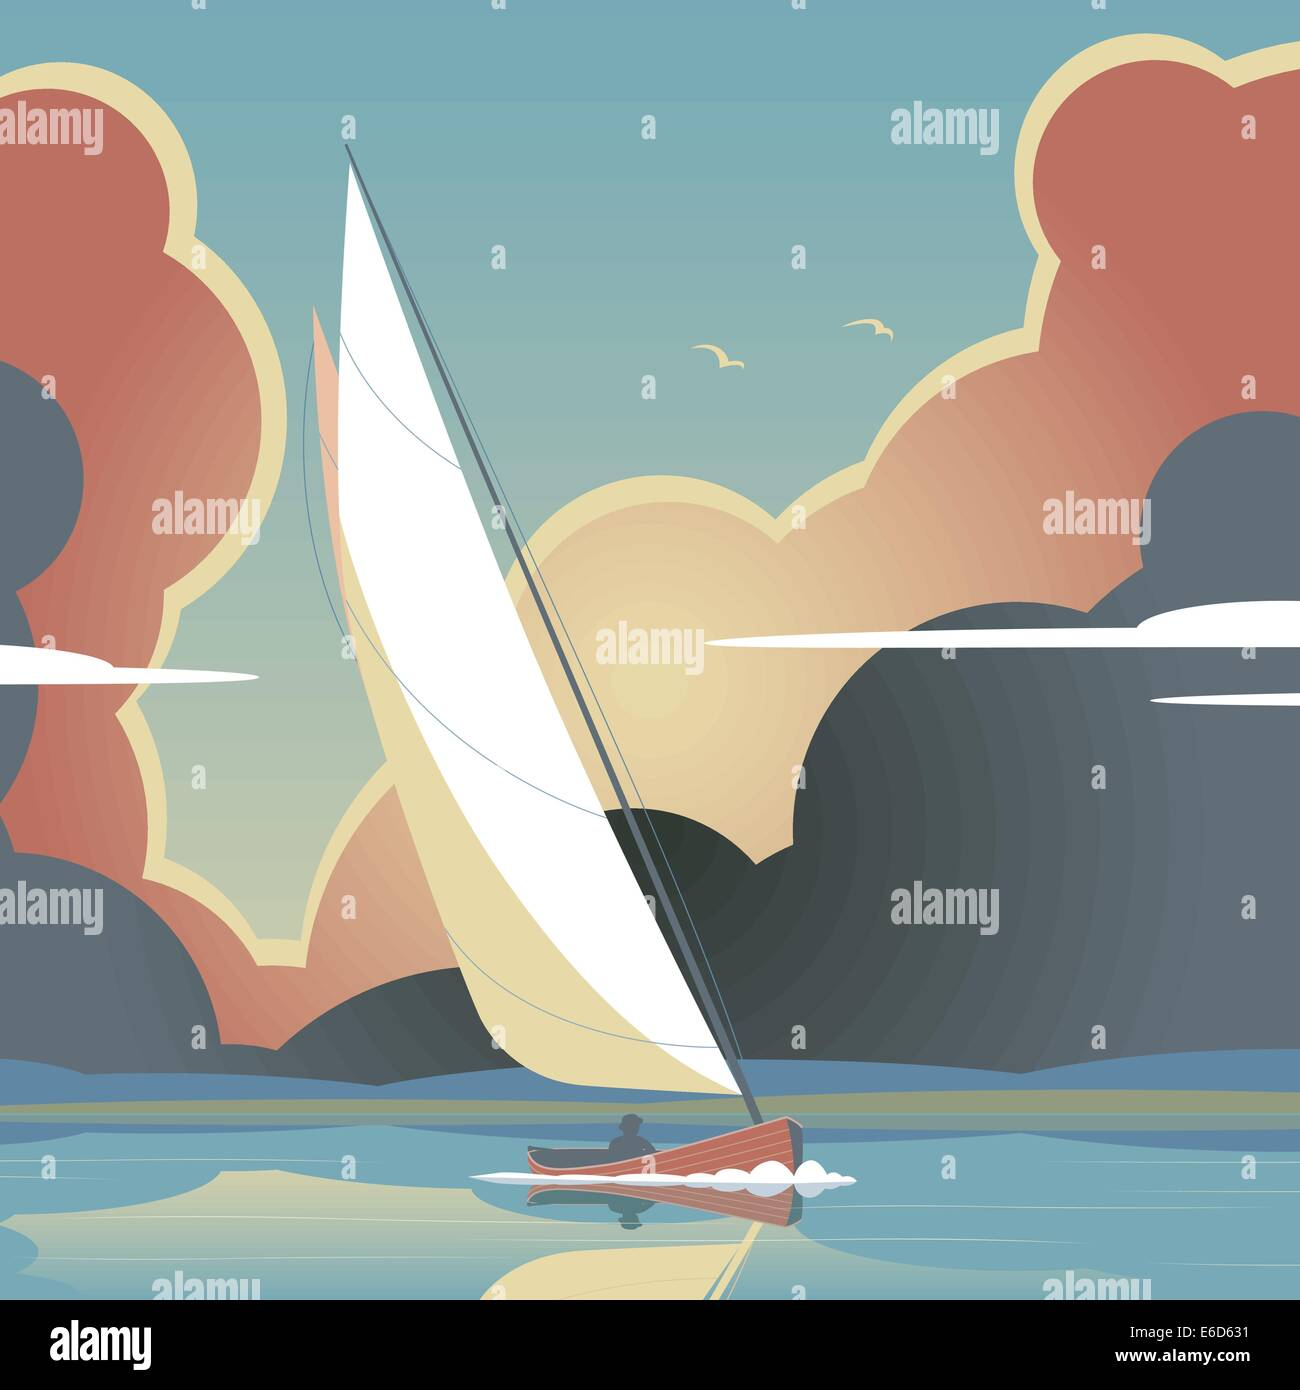 Editable vector illustration of a man sailing a yacht on calm water Stock Vector